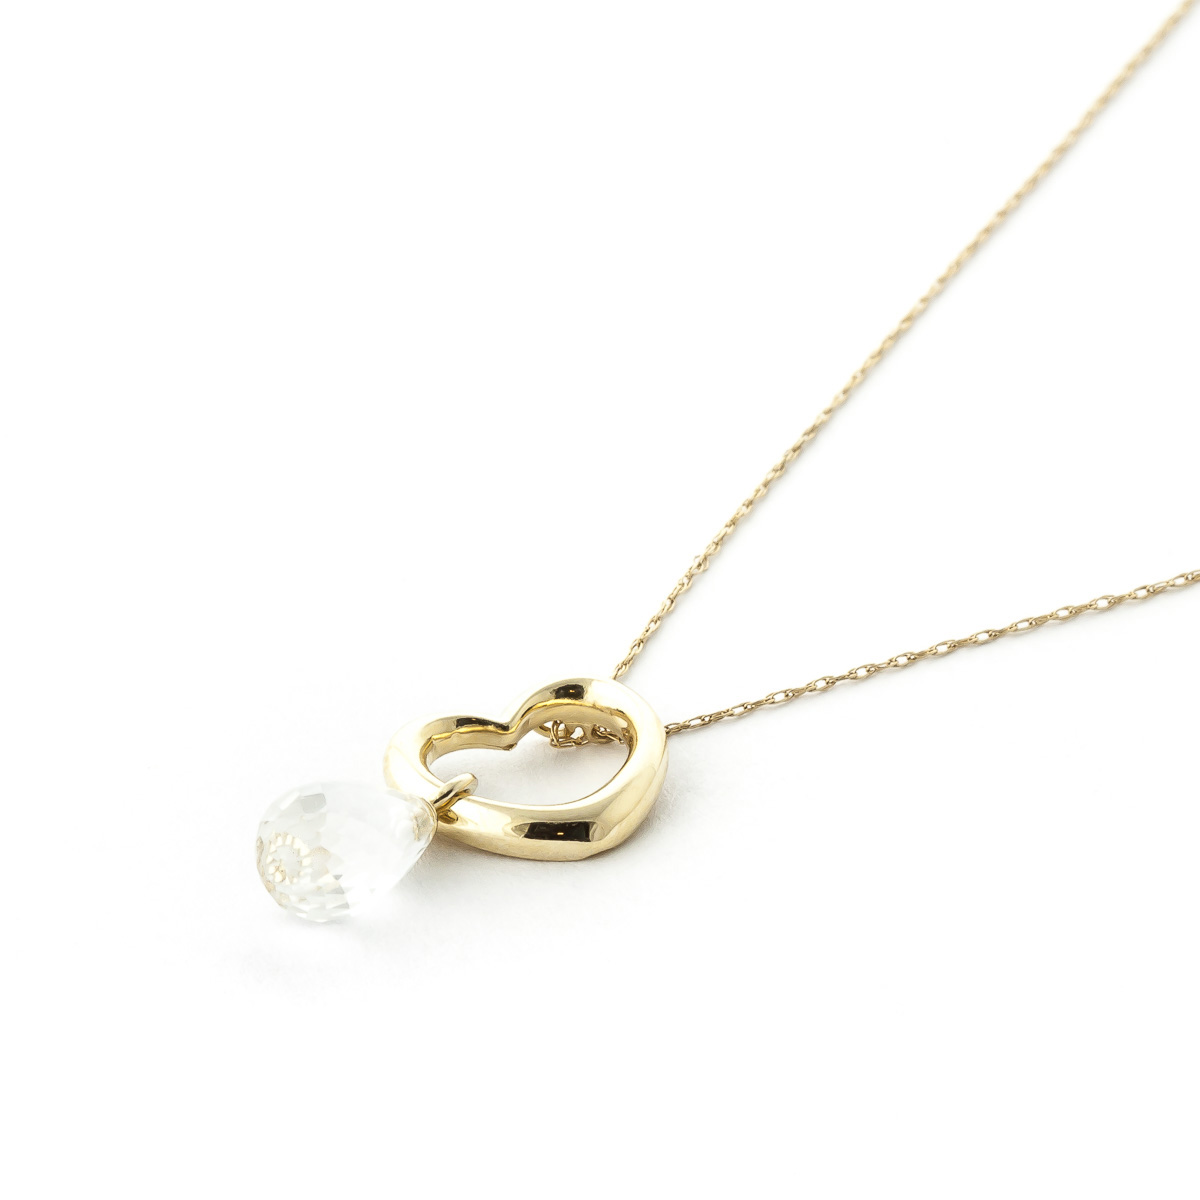 Pear Cut White Topaz Pendant Necklace 2.25ct in 9ct Gold